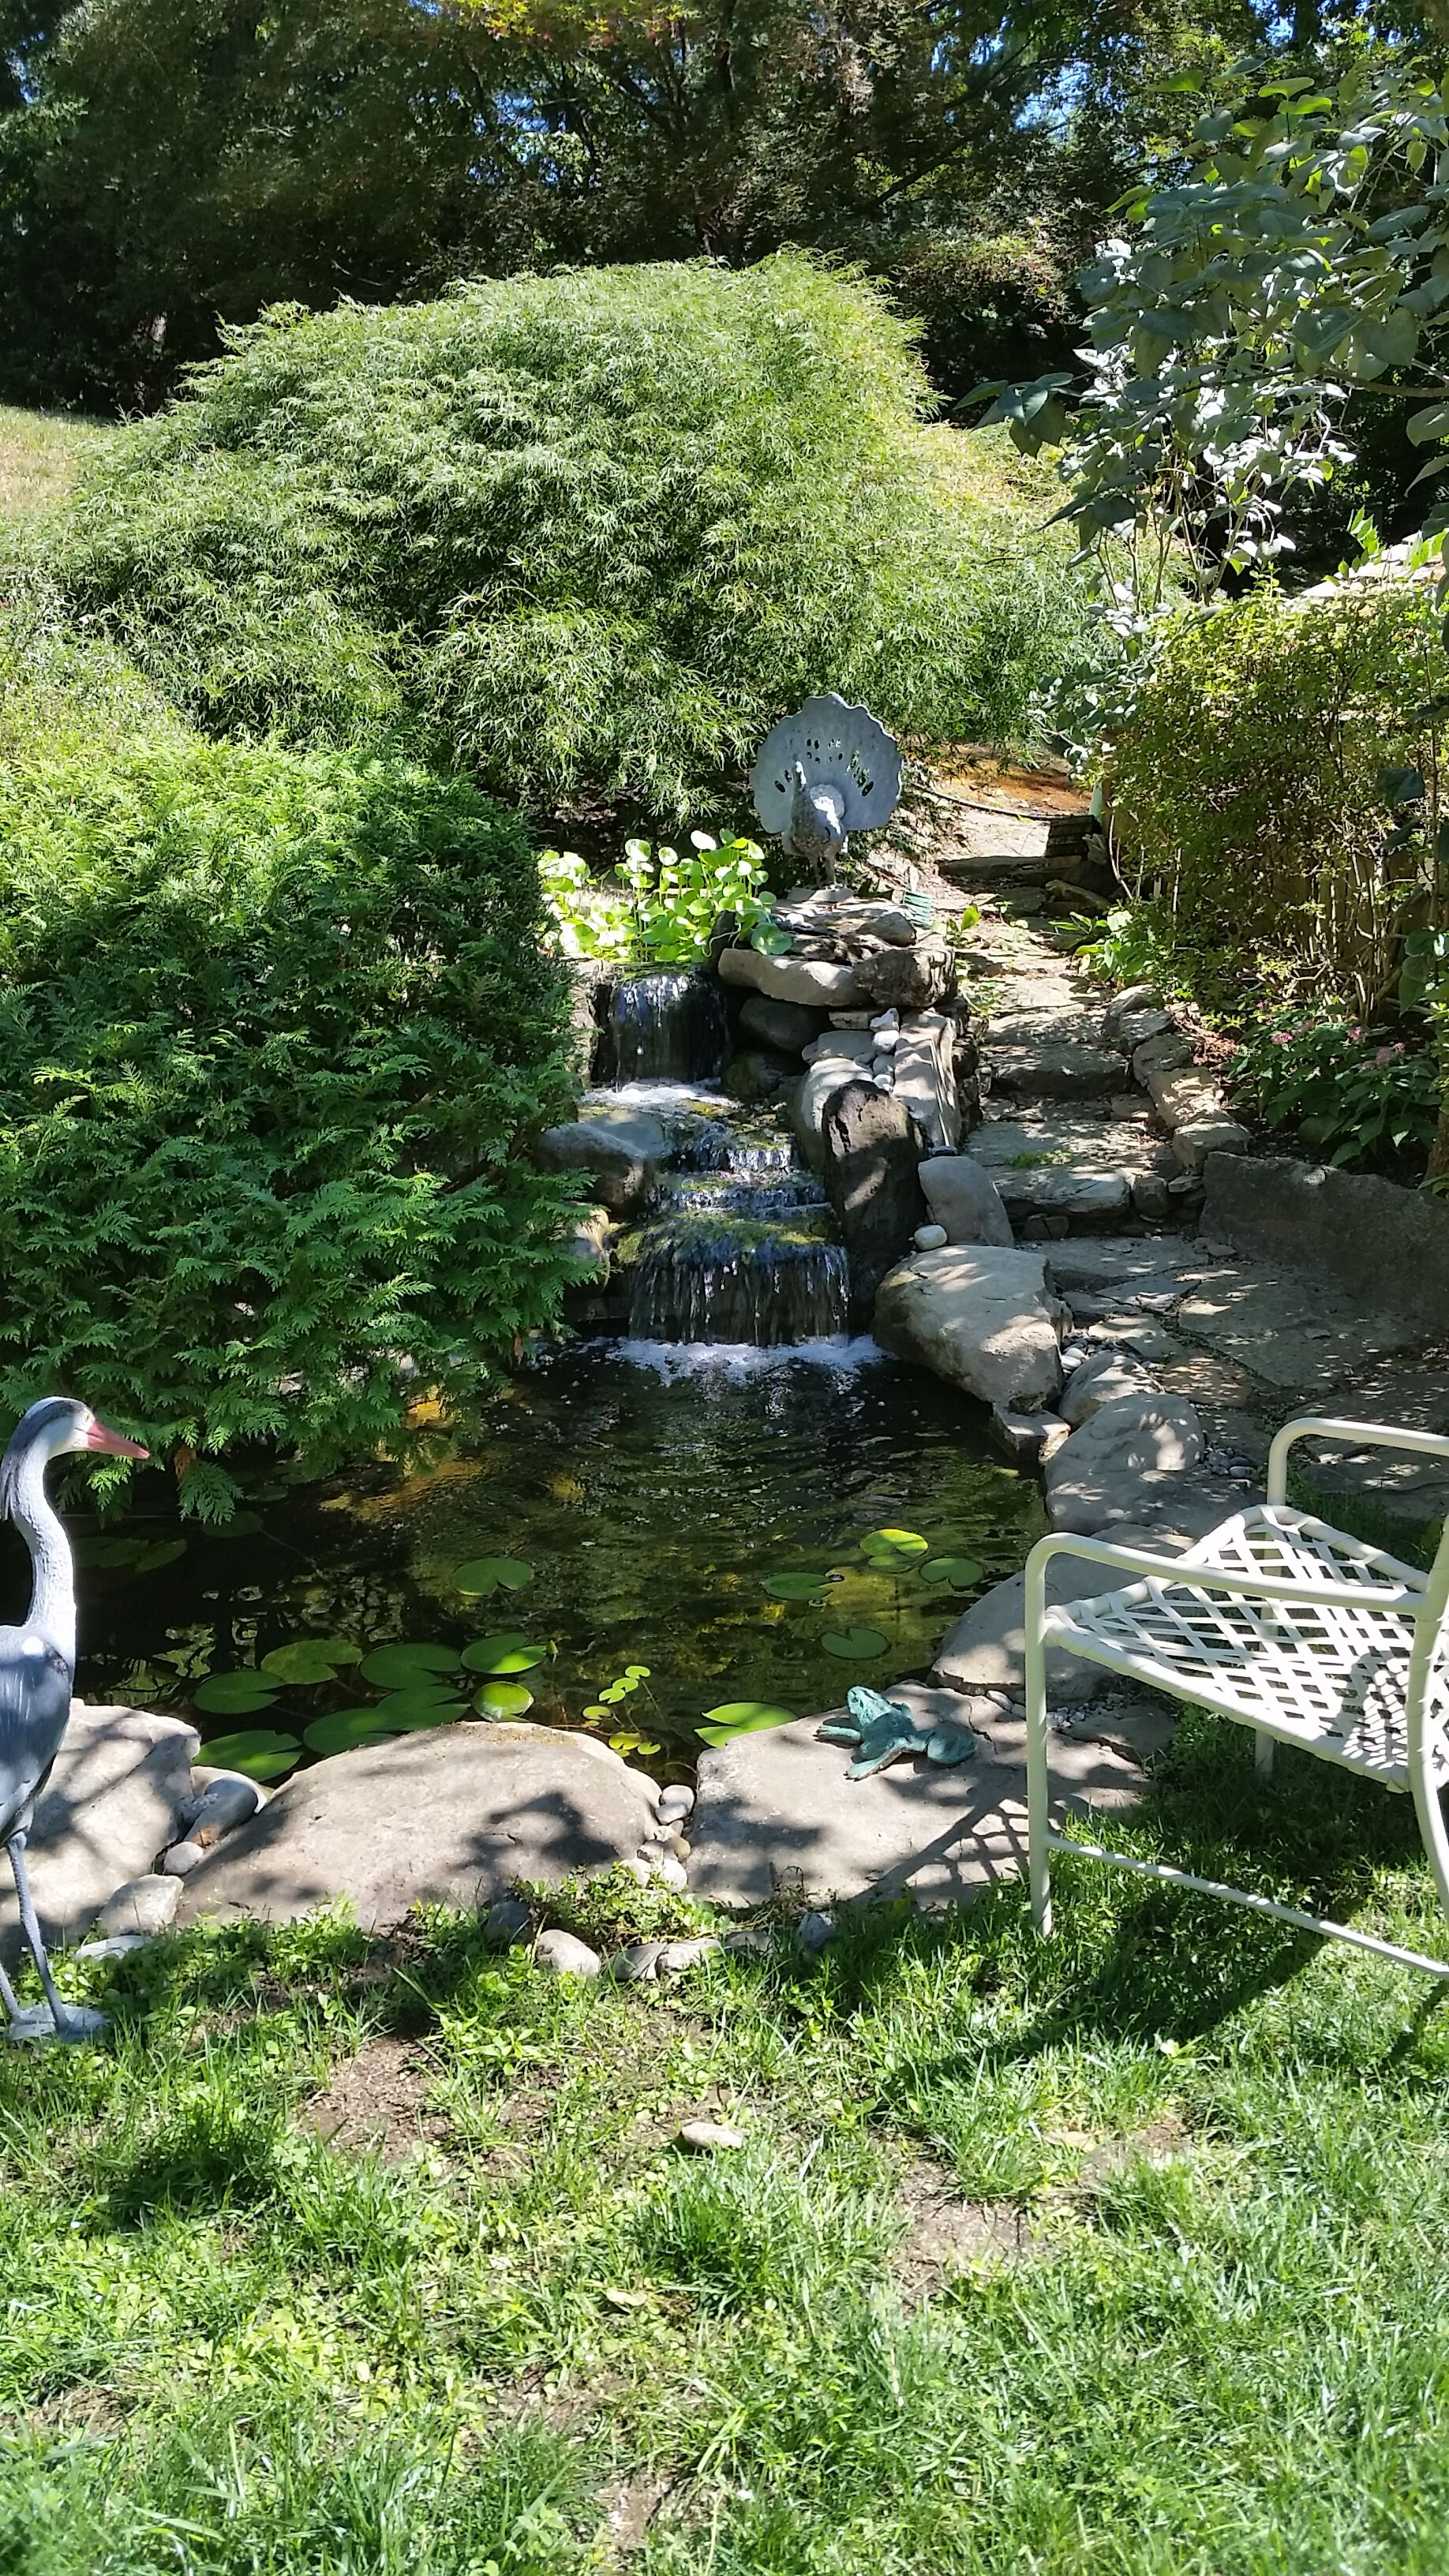 Pond renovation in mind? Our top 3 suggestions